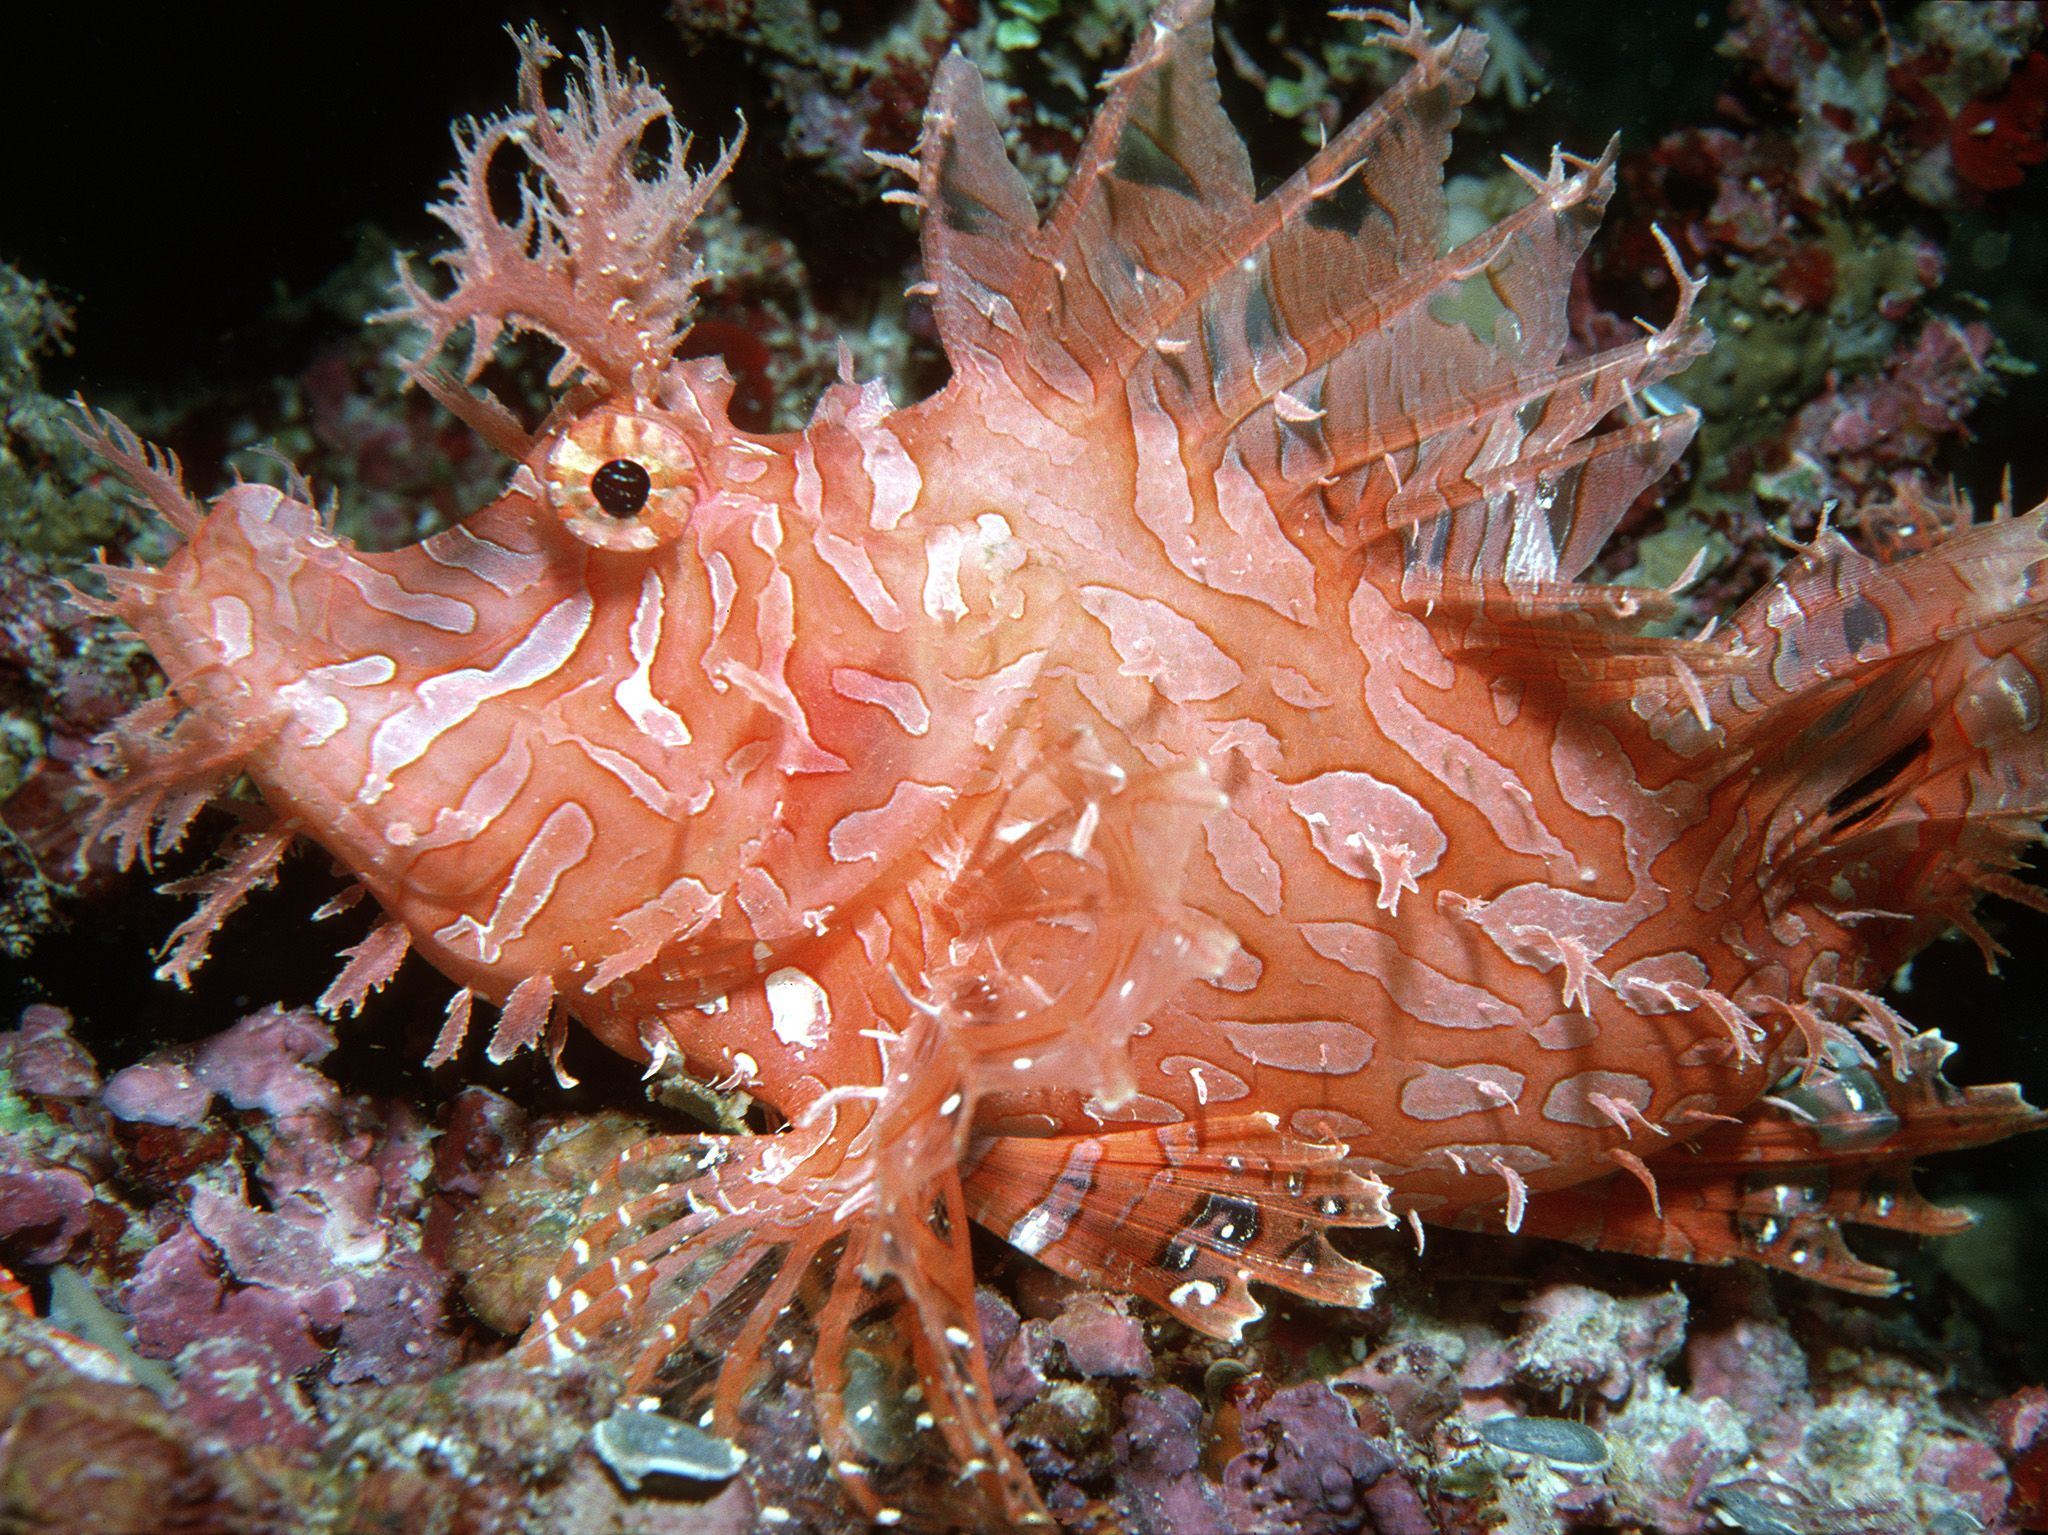 Indo-Pacific Ocean:  The Weedy scorpionfish (Rhinopias aphanes) is a peculiar looking fish with... [Foto del giorno - ottobre 2017]